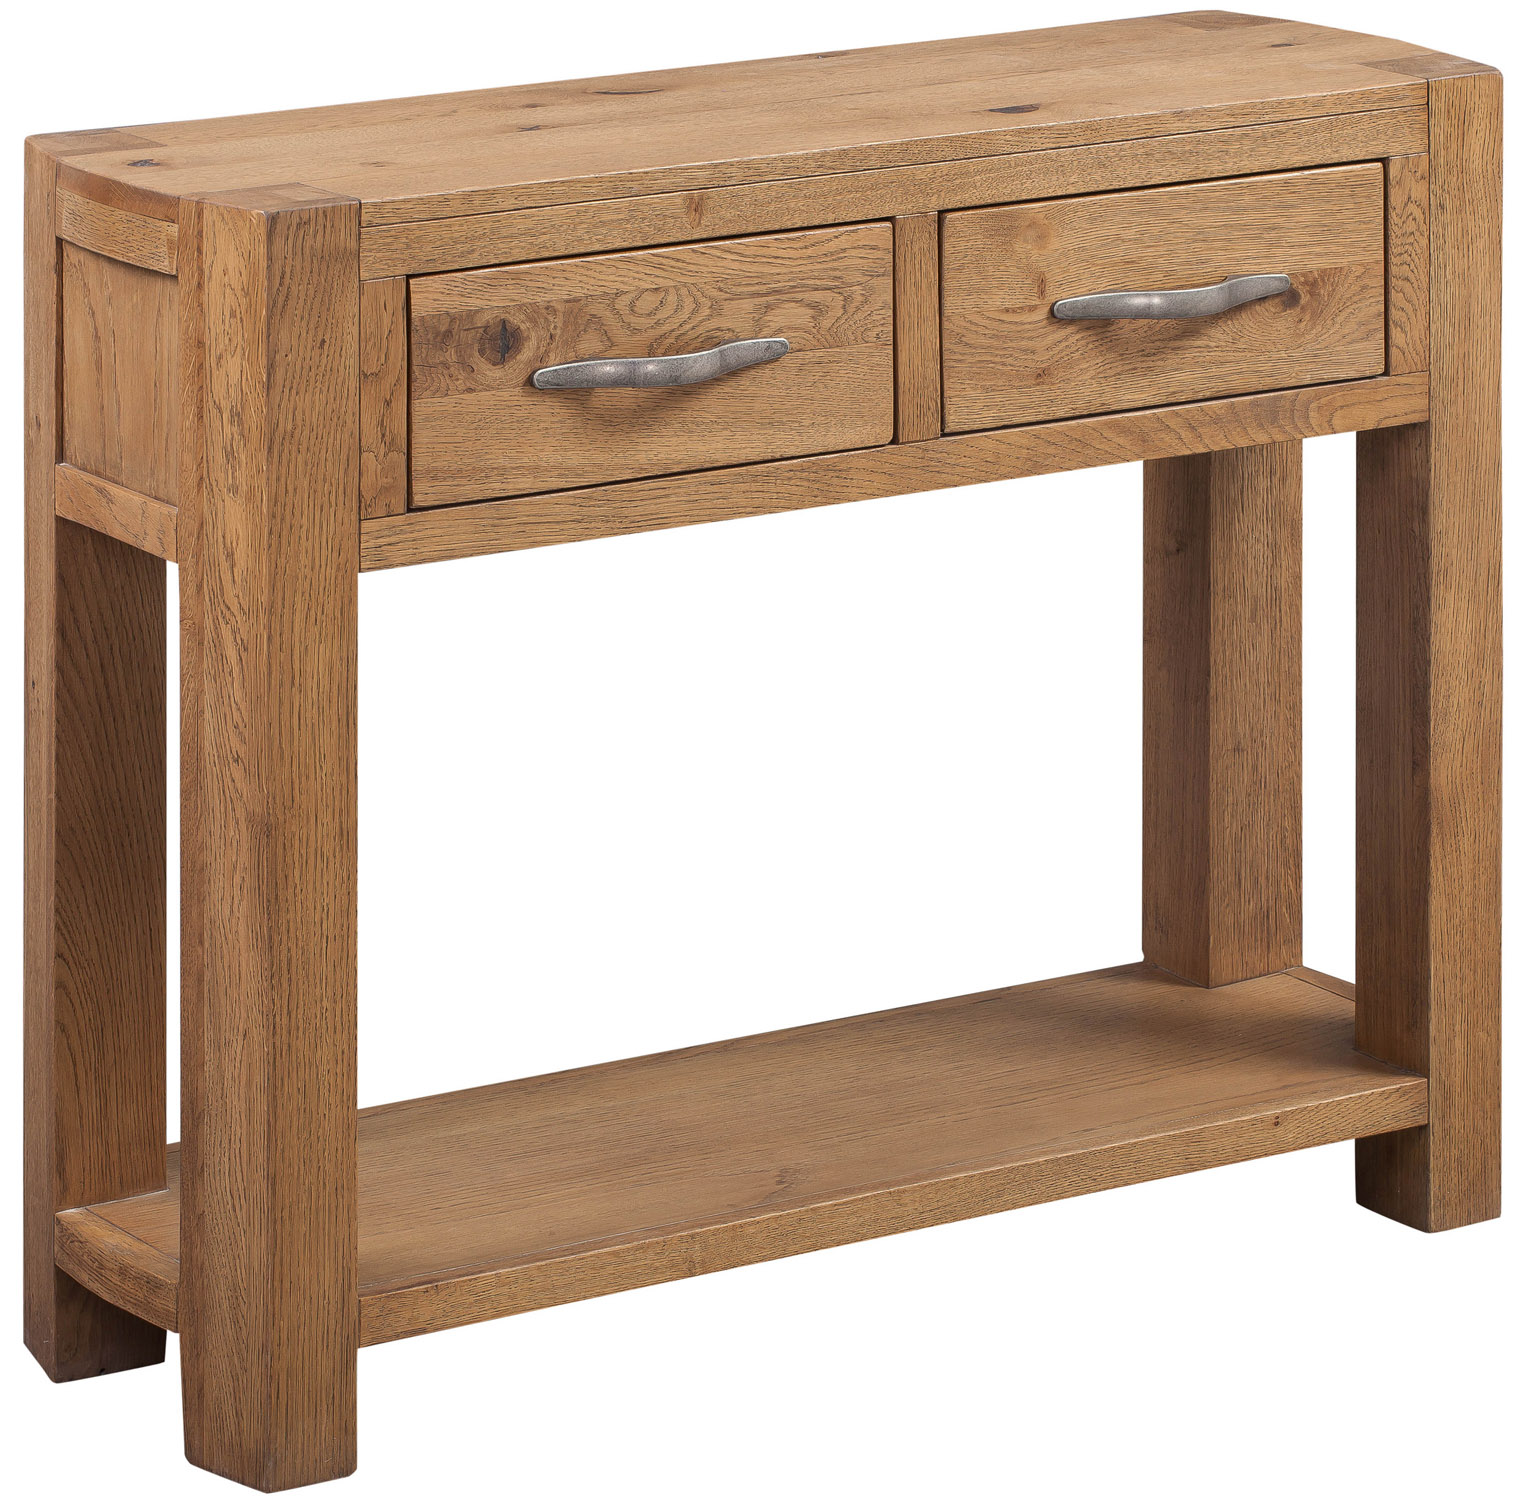 Details about distressed oak 2 drawer console table solid wooden side end telephone table